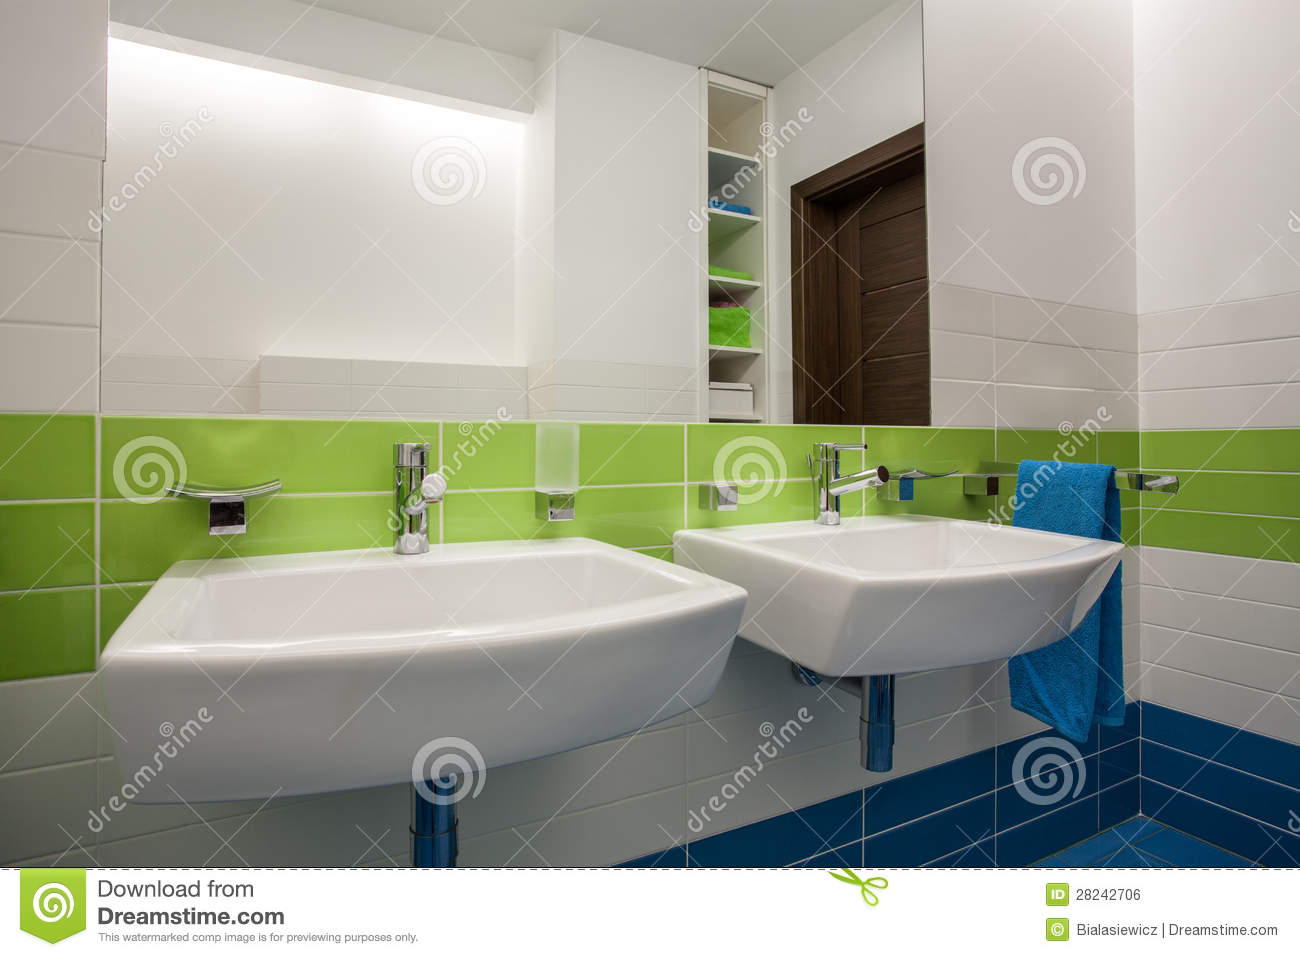 Maison De Travertin - Salle De Bains Photo stock - Image du ...